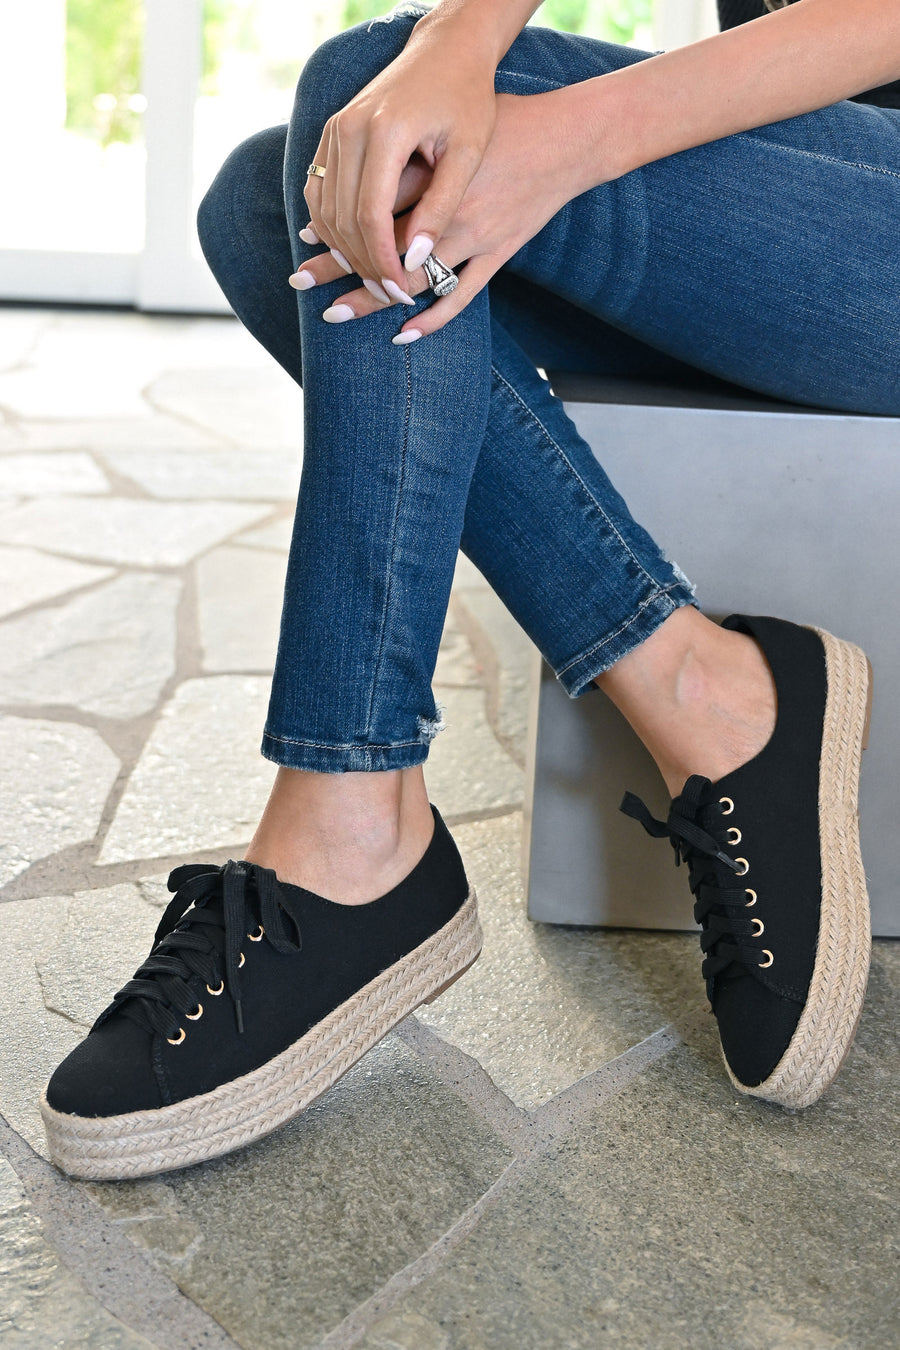 Jessica Espadrille Platform Sneakers - Black womens straw bottom lace up sneakers closet candy sitting